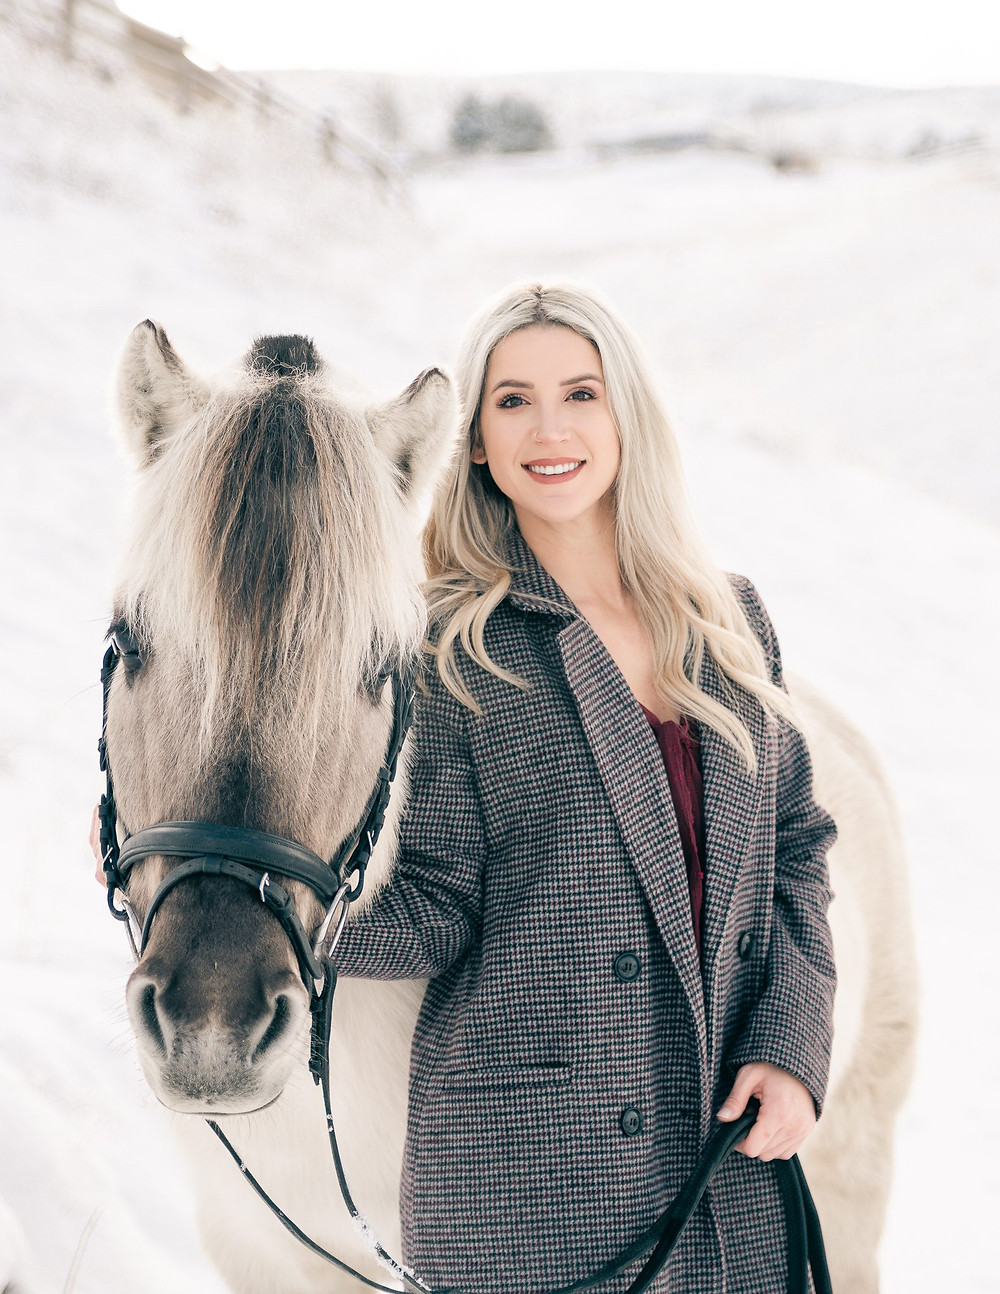 a blonde girl standing next to her Fjord horse, wearing a grey coat in the snow